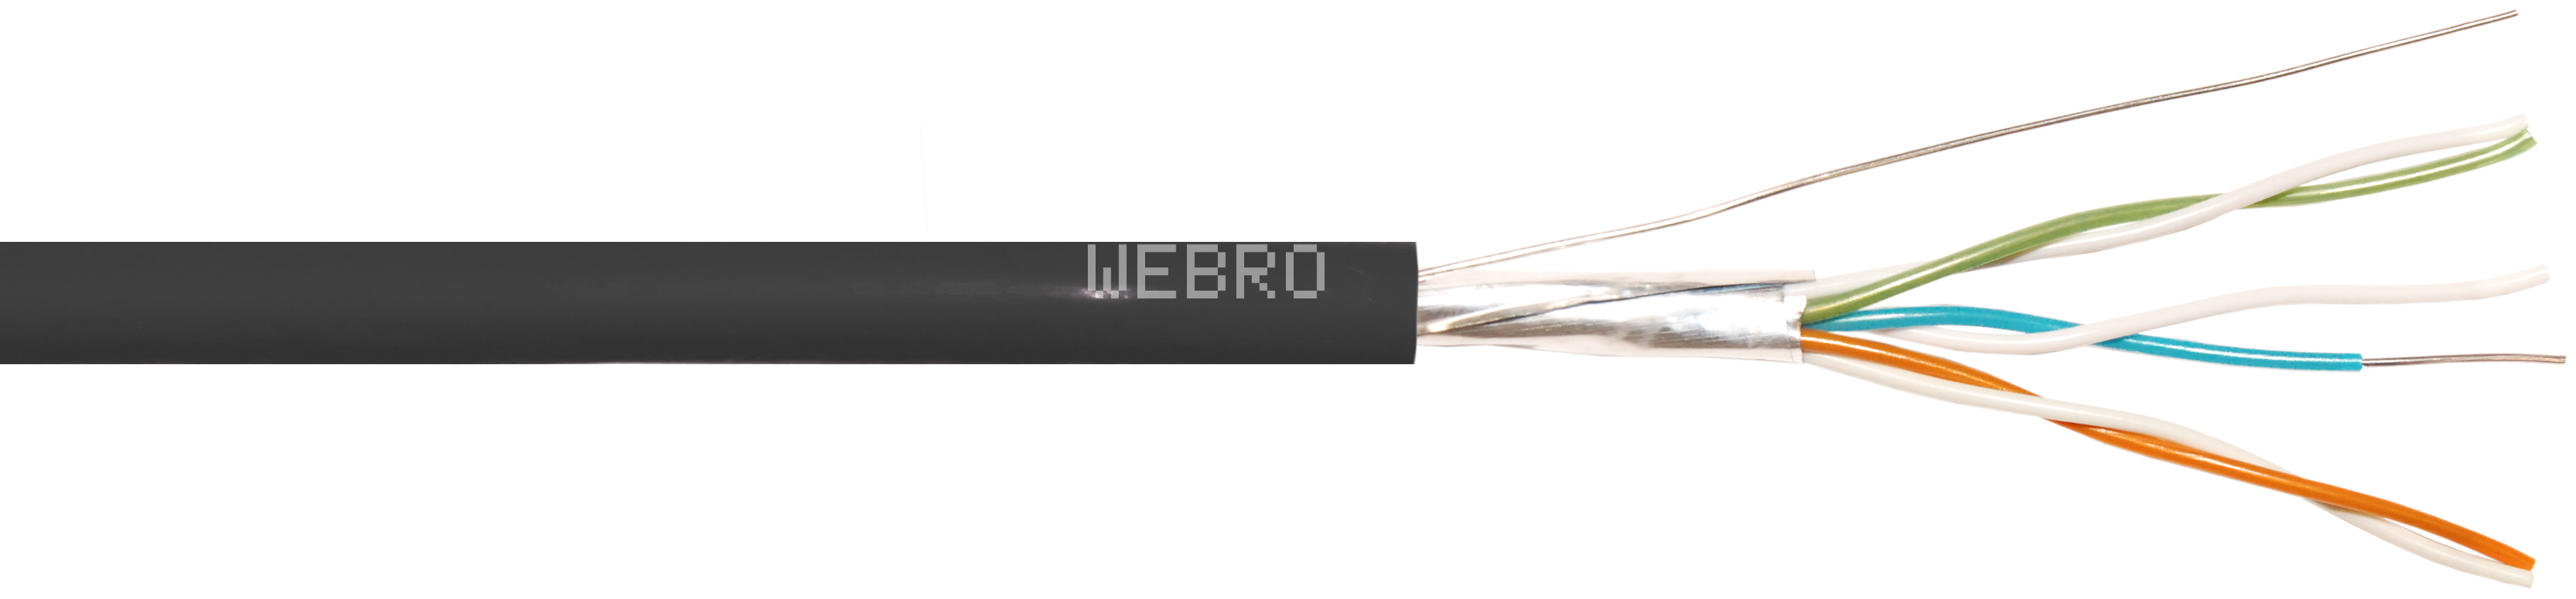 transport cables, Webro rail Cable, G7623 cable, LU1-085 rail cable